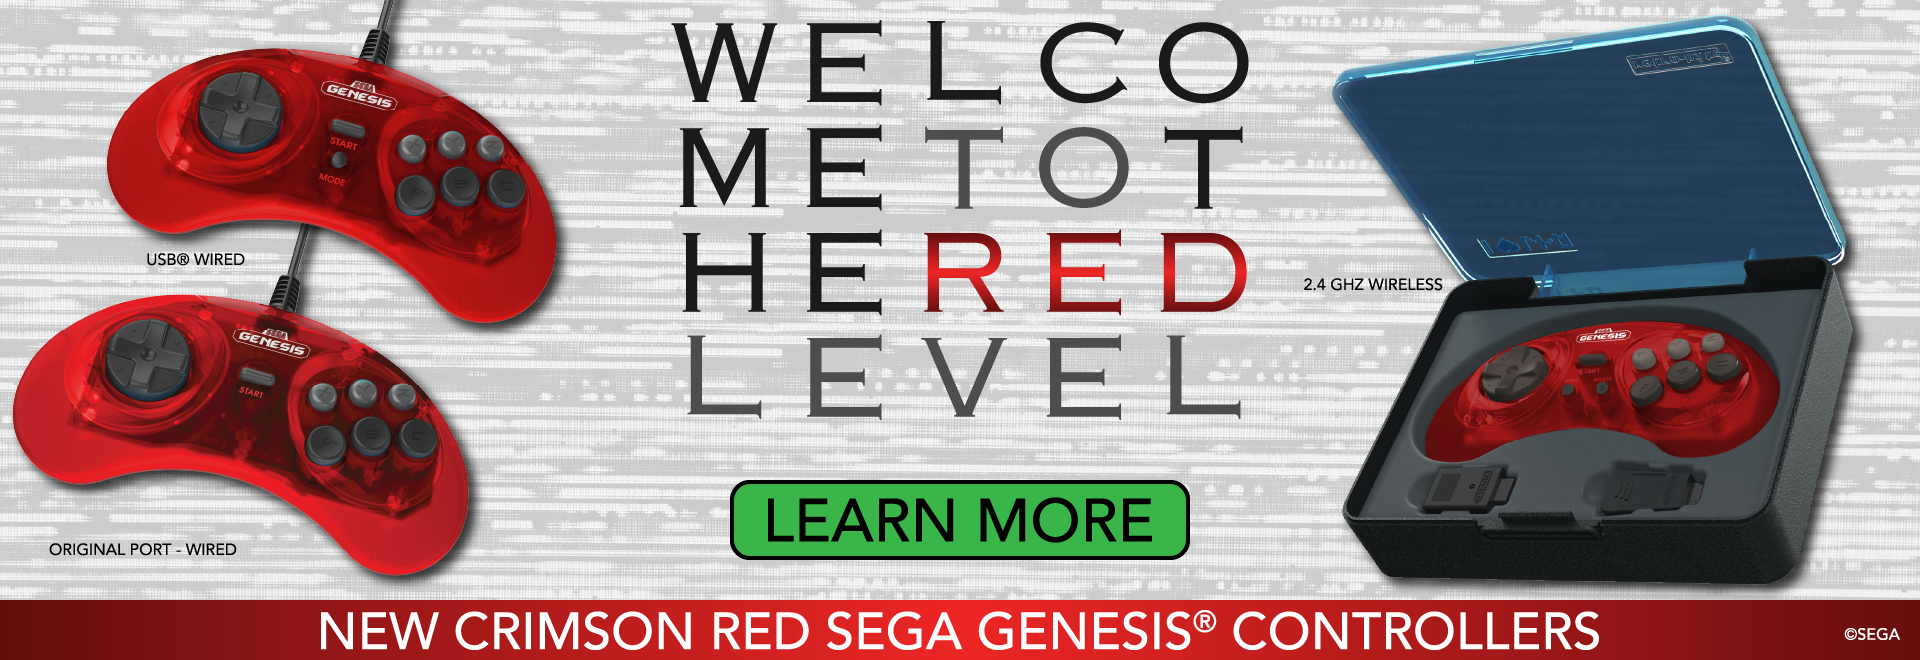 SEGA Genesis Crimson Red - Welcome to the Red Level